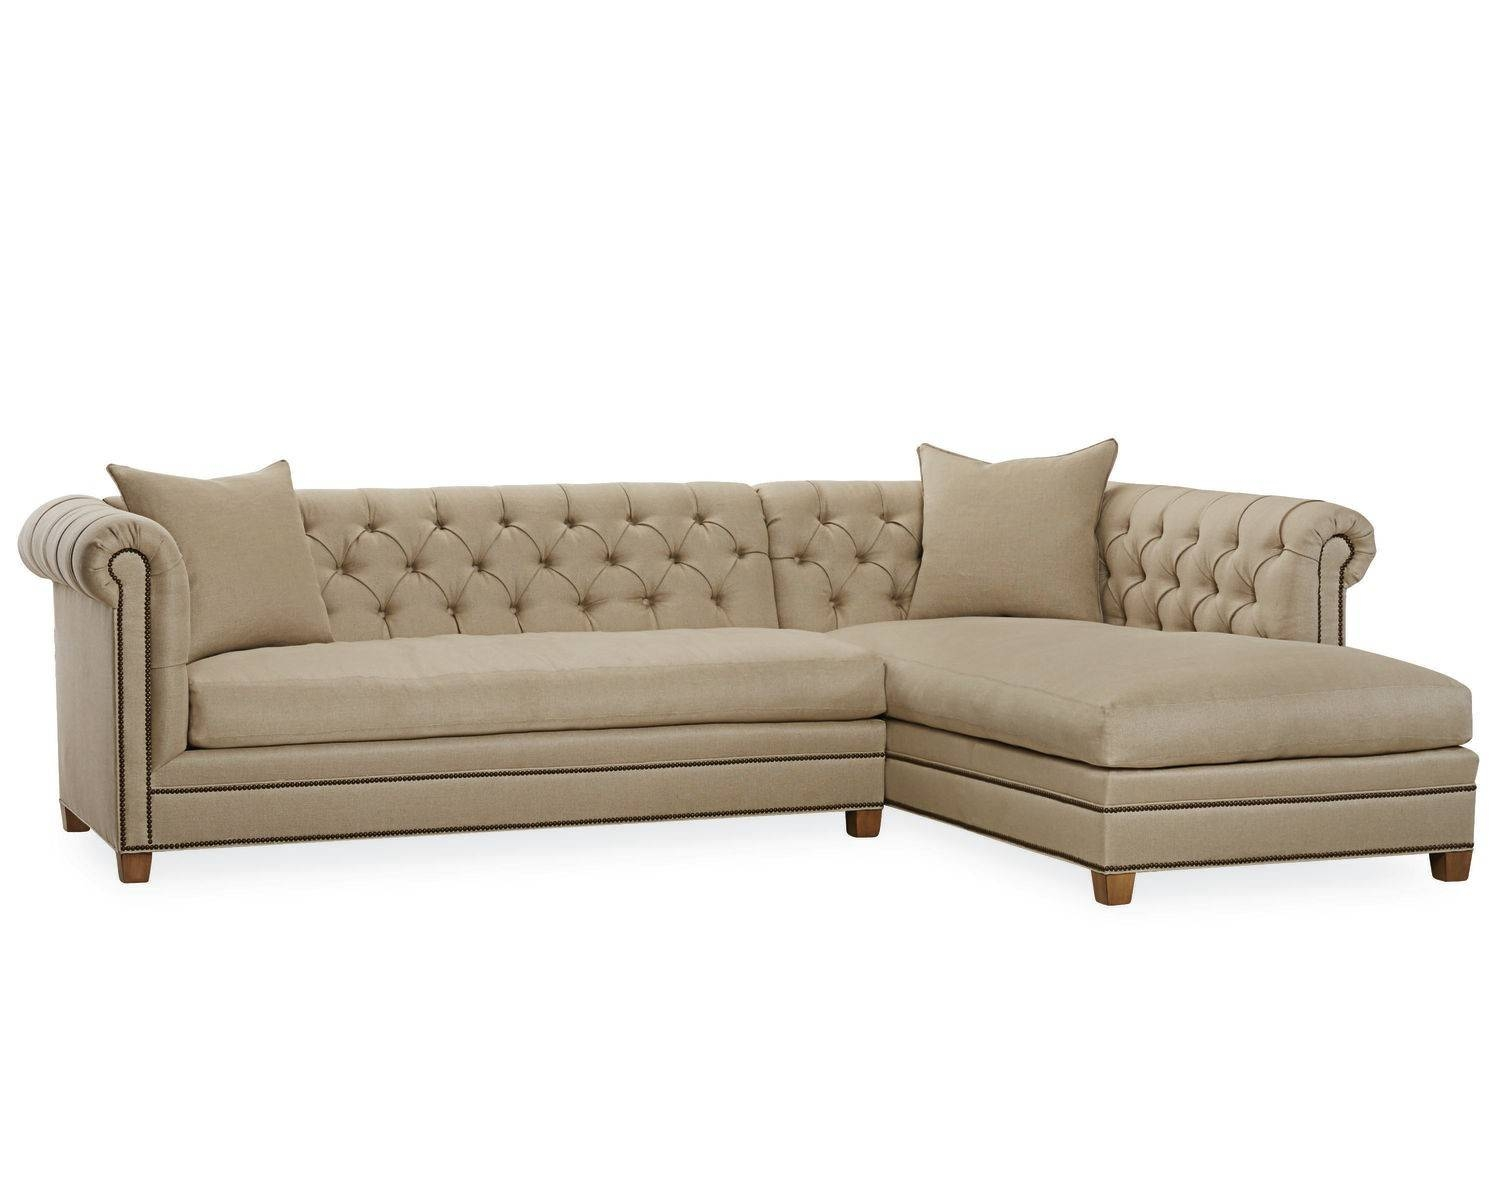 American Furniture | Cambridge Sectional | Lee Industries regarding Lee Industries Sectional Sofa (Image 1 of 25)